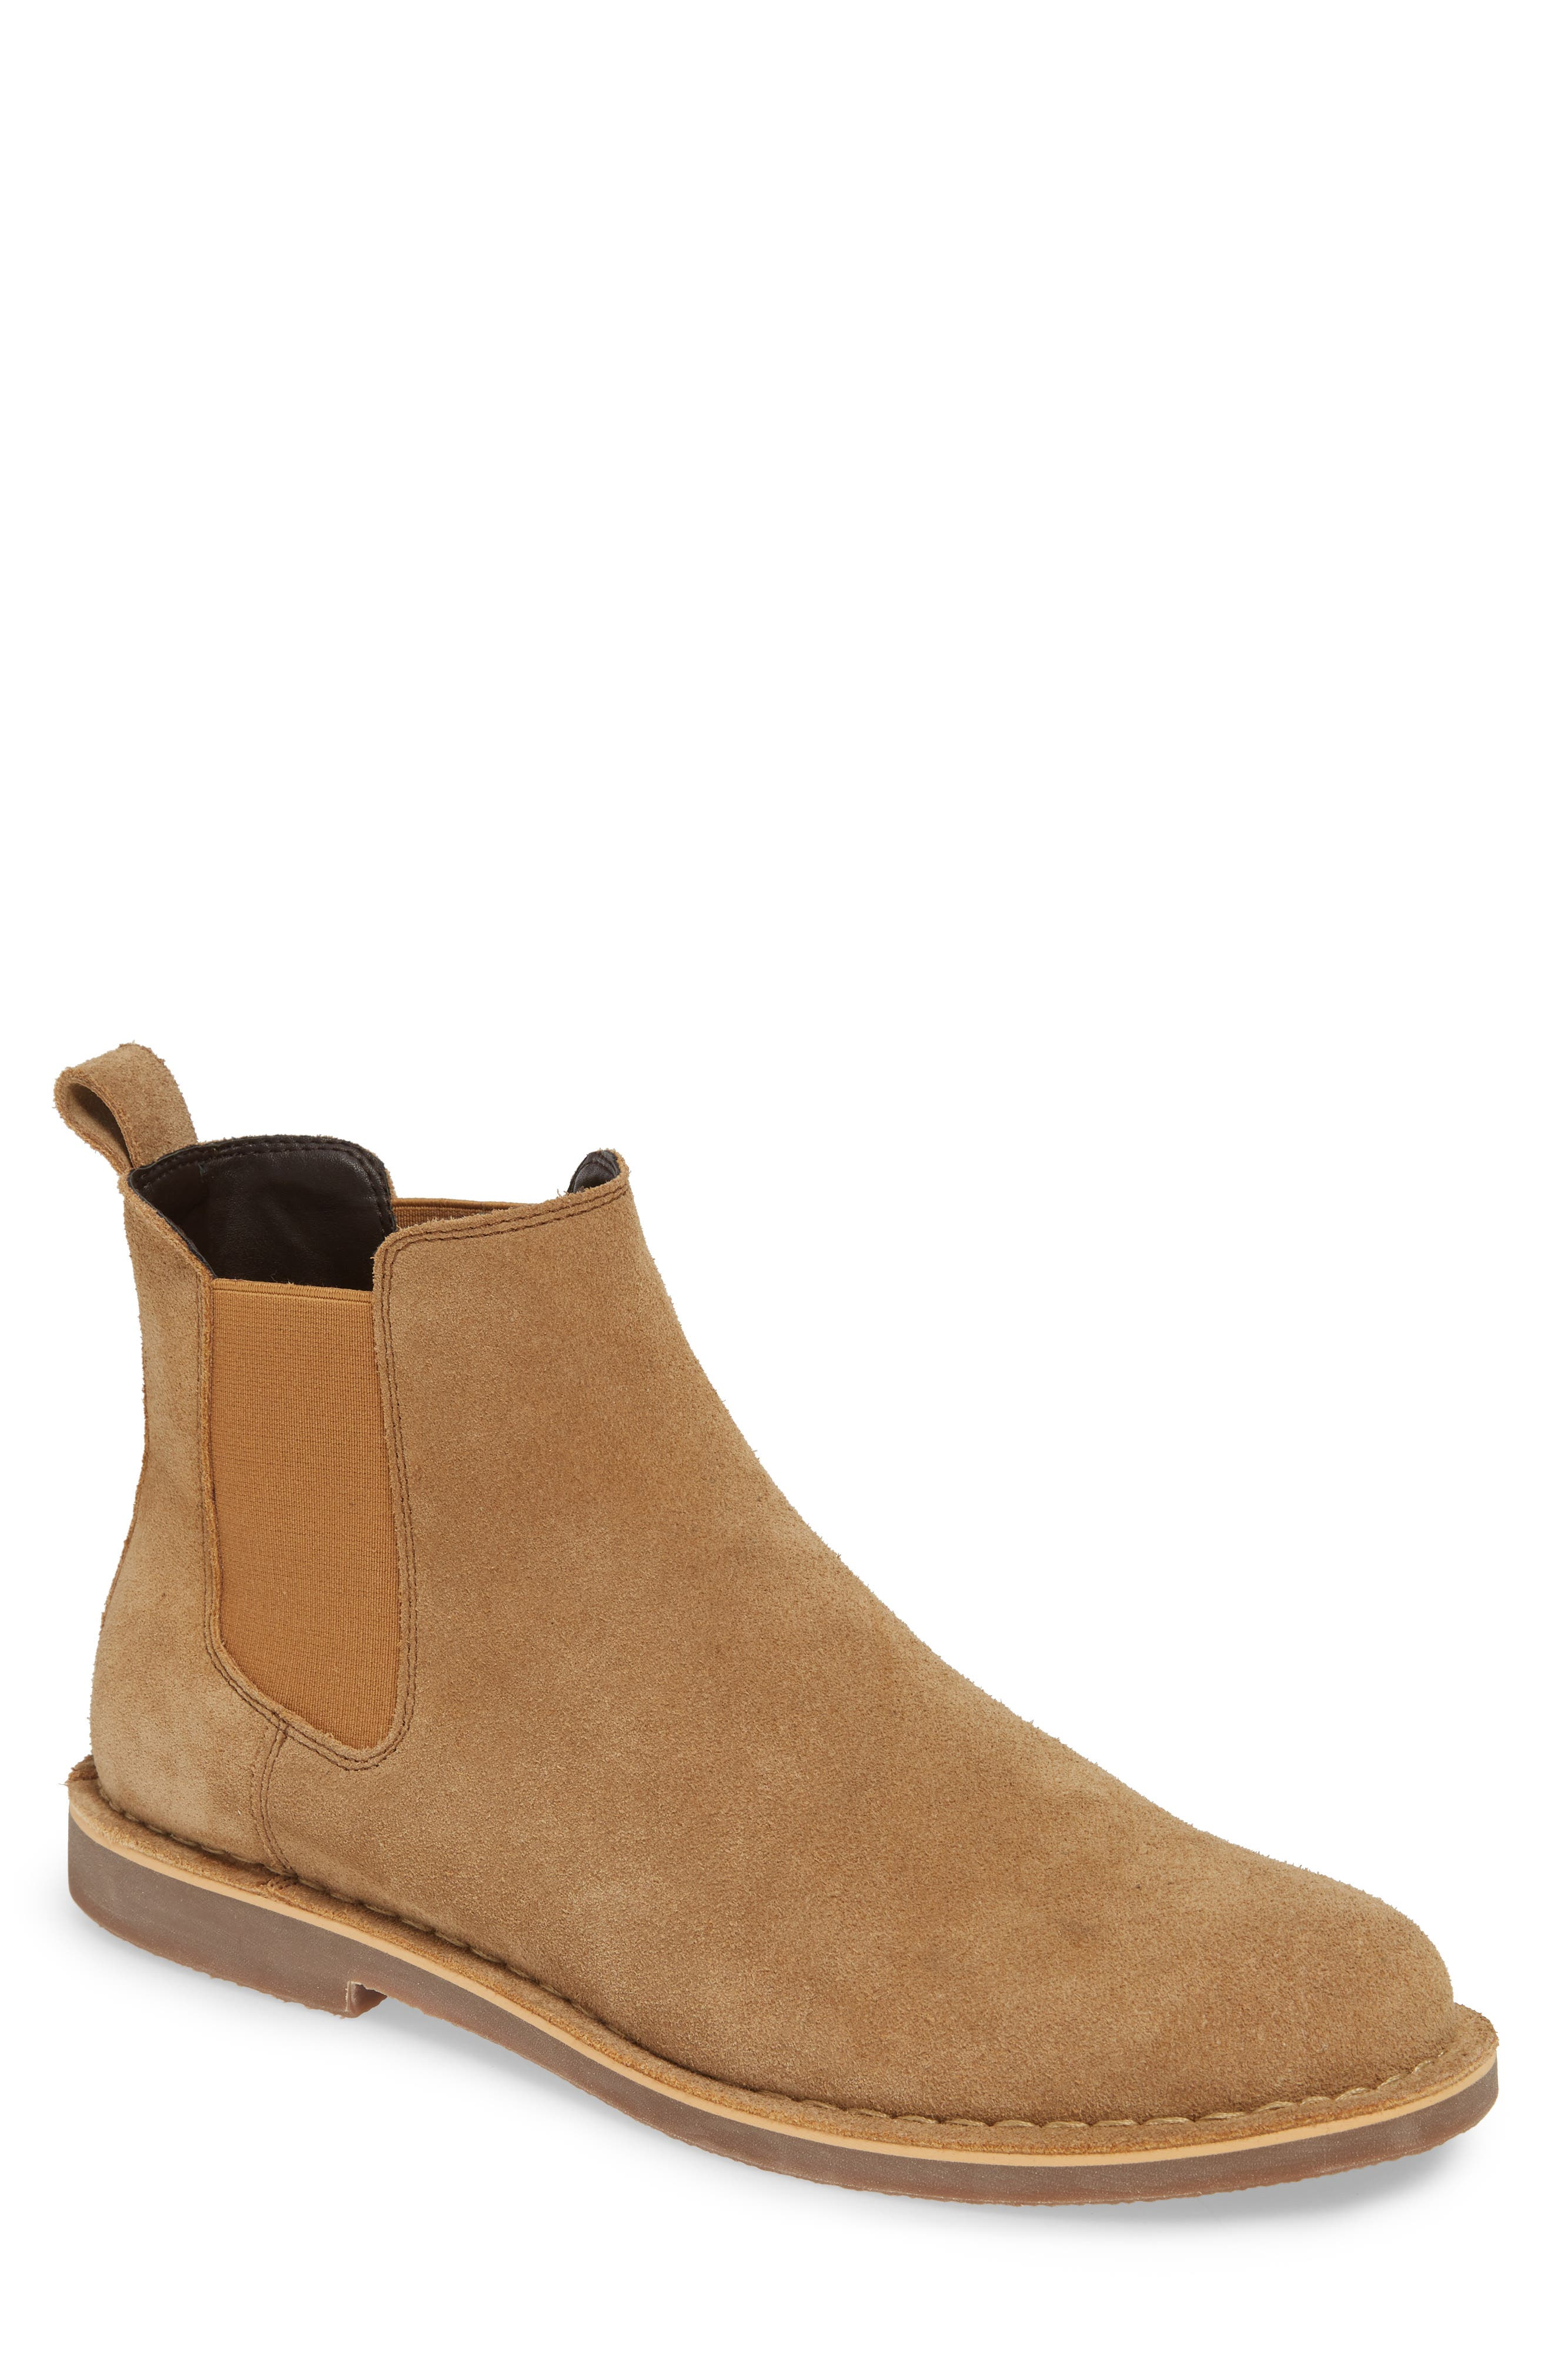 THE RAIL Payson Chelsea Boot, Main, color, SAND SUEDE